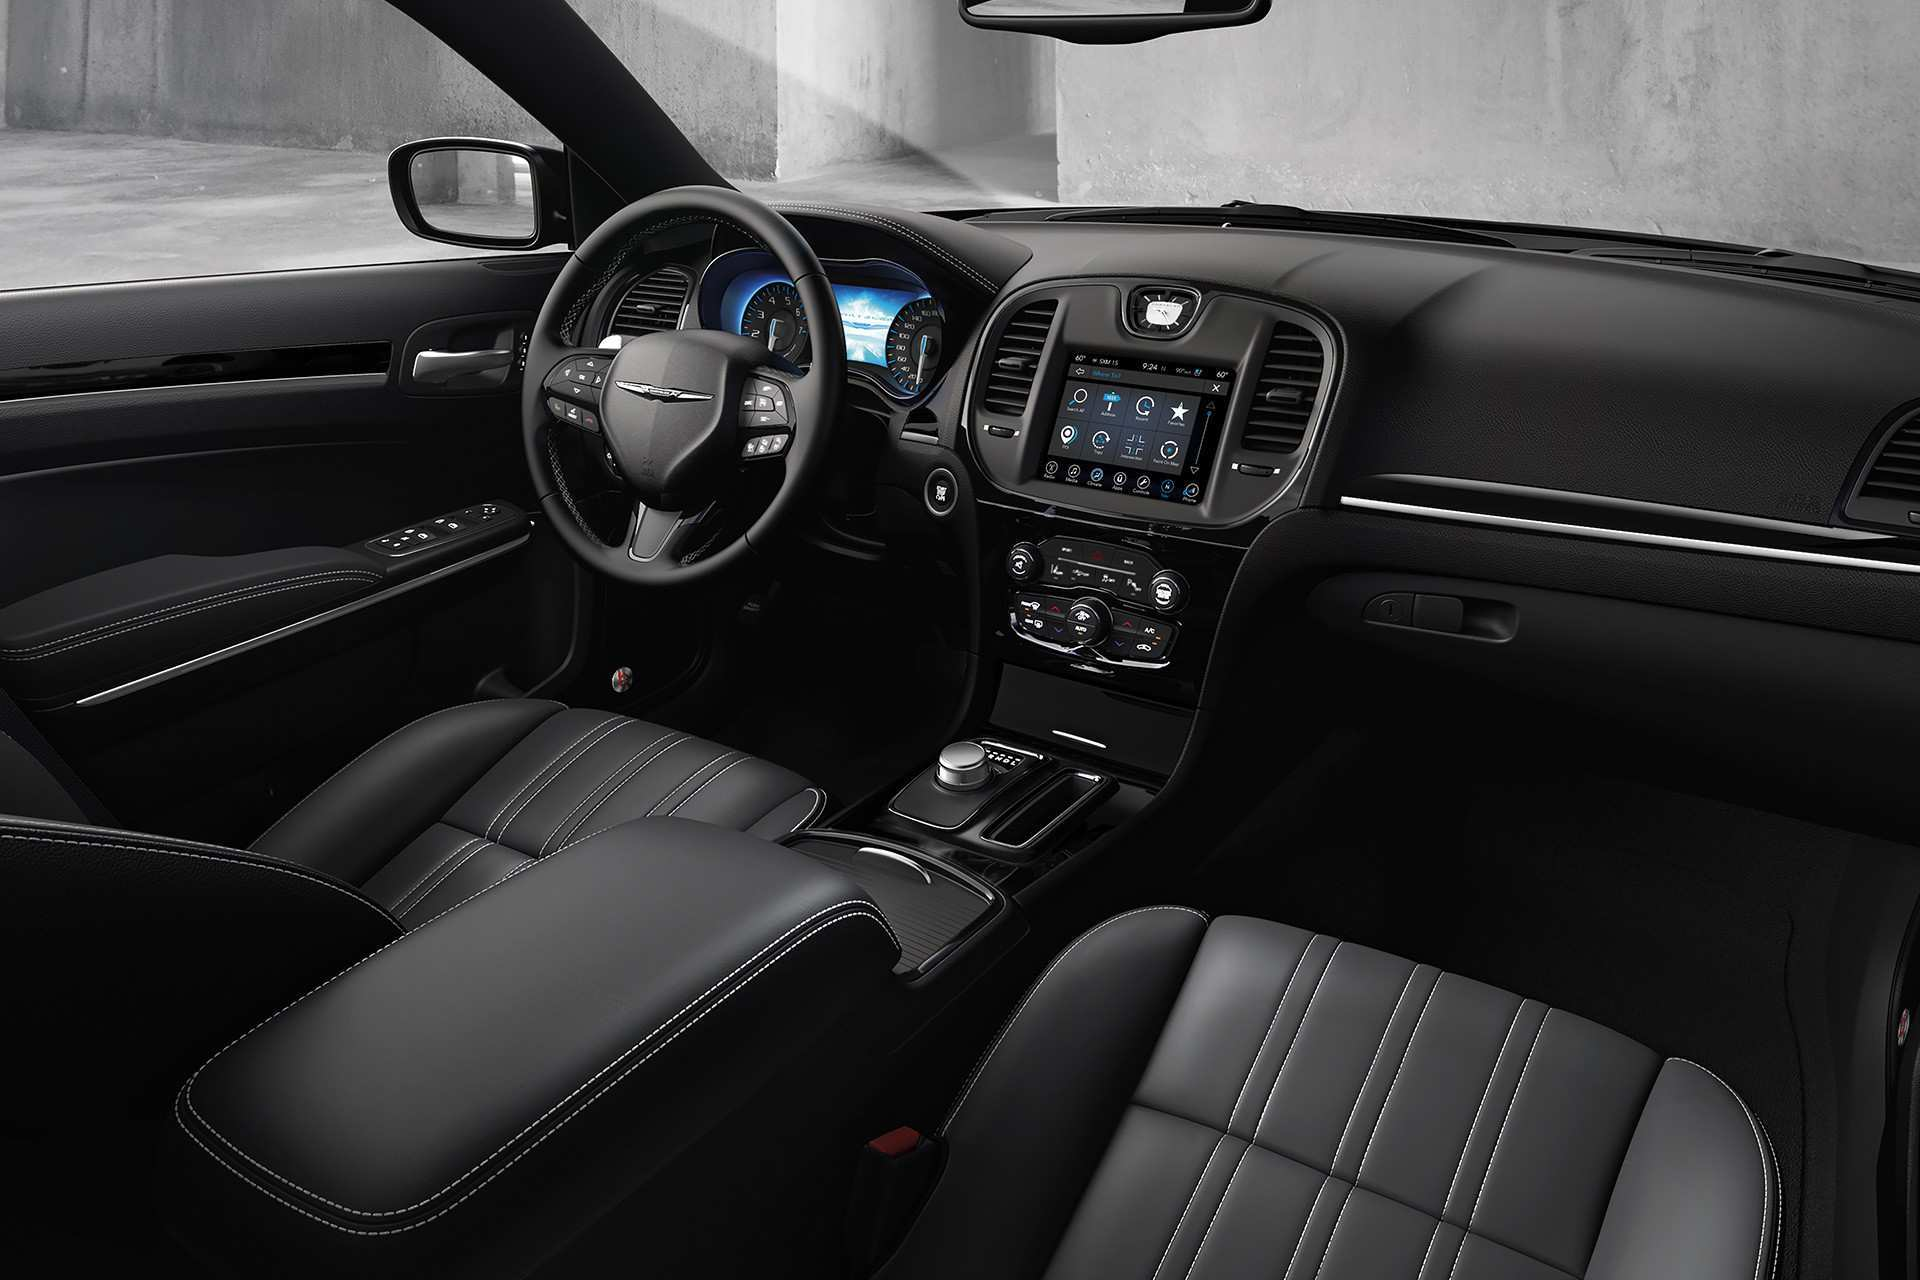 95 All New 2019 Chrysler 300 Interior Pictures